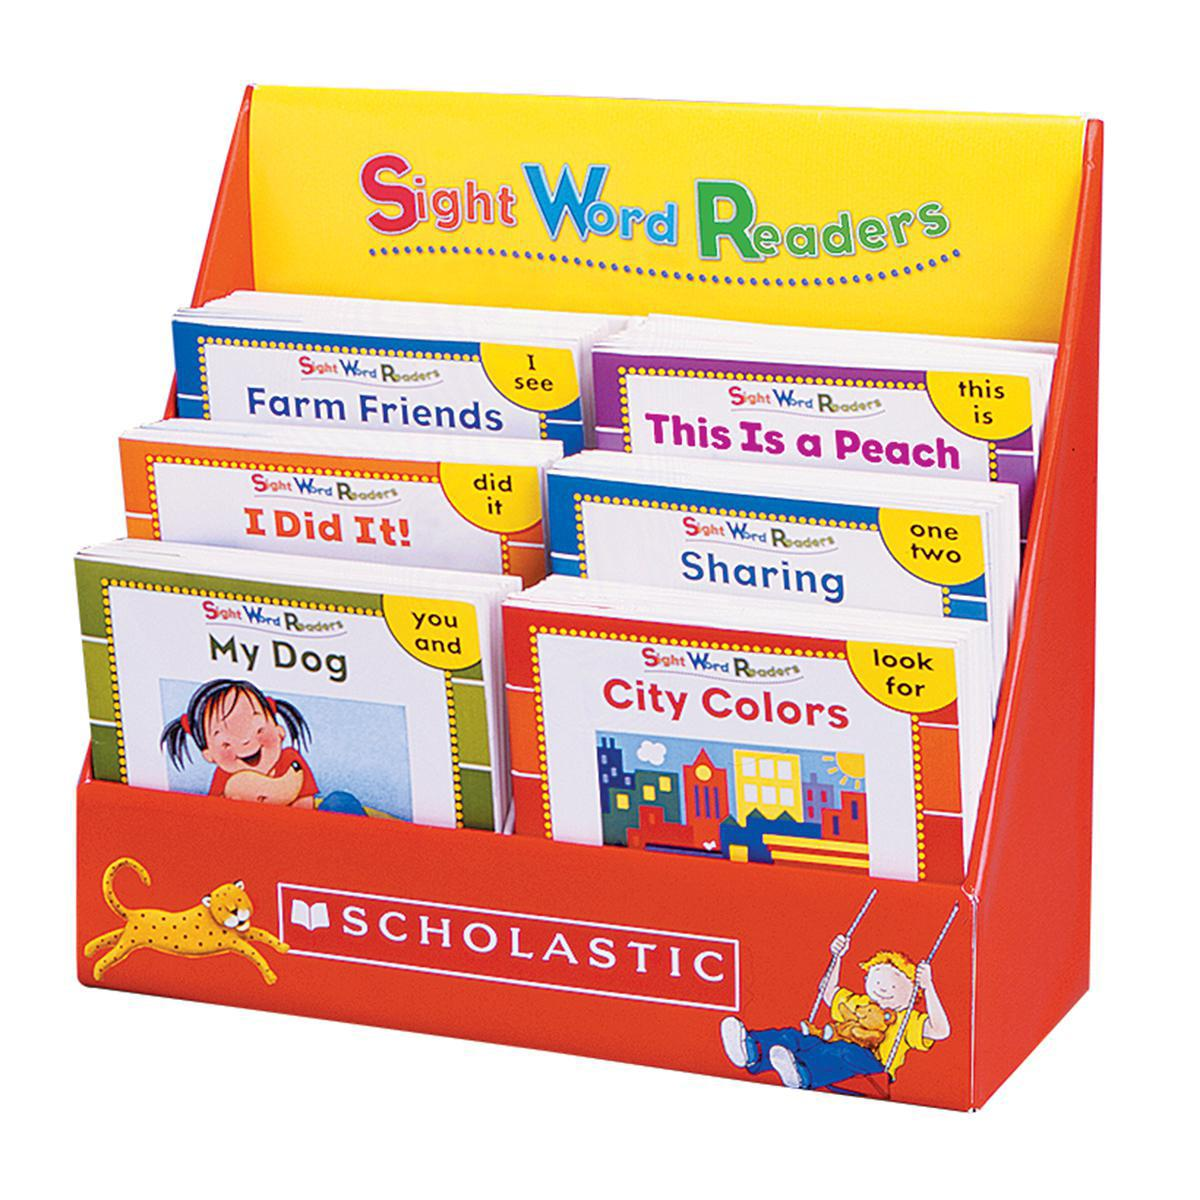 Sight Words Readers Box Set